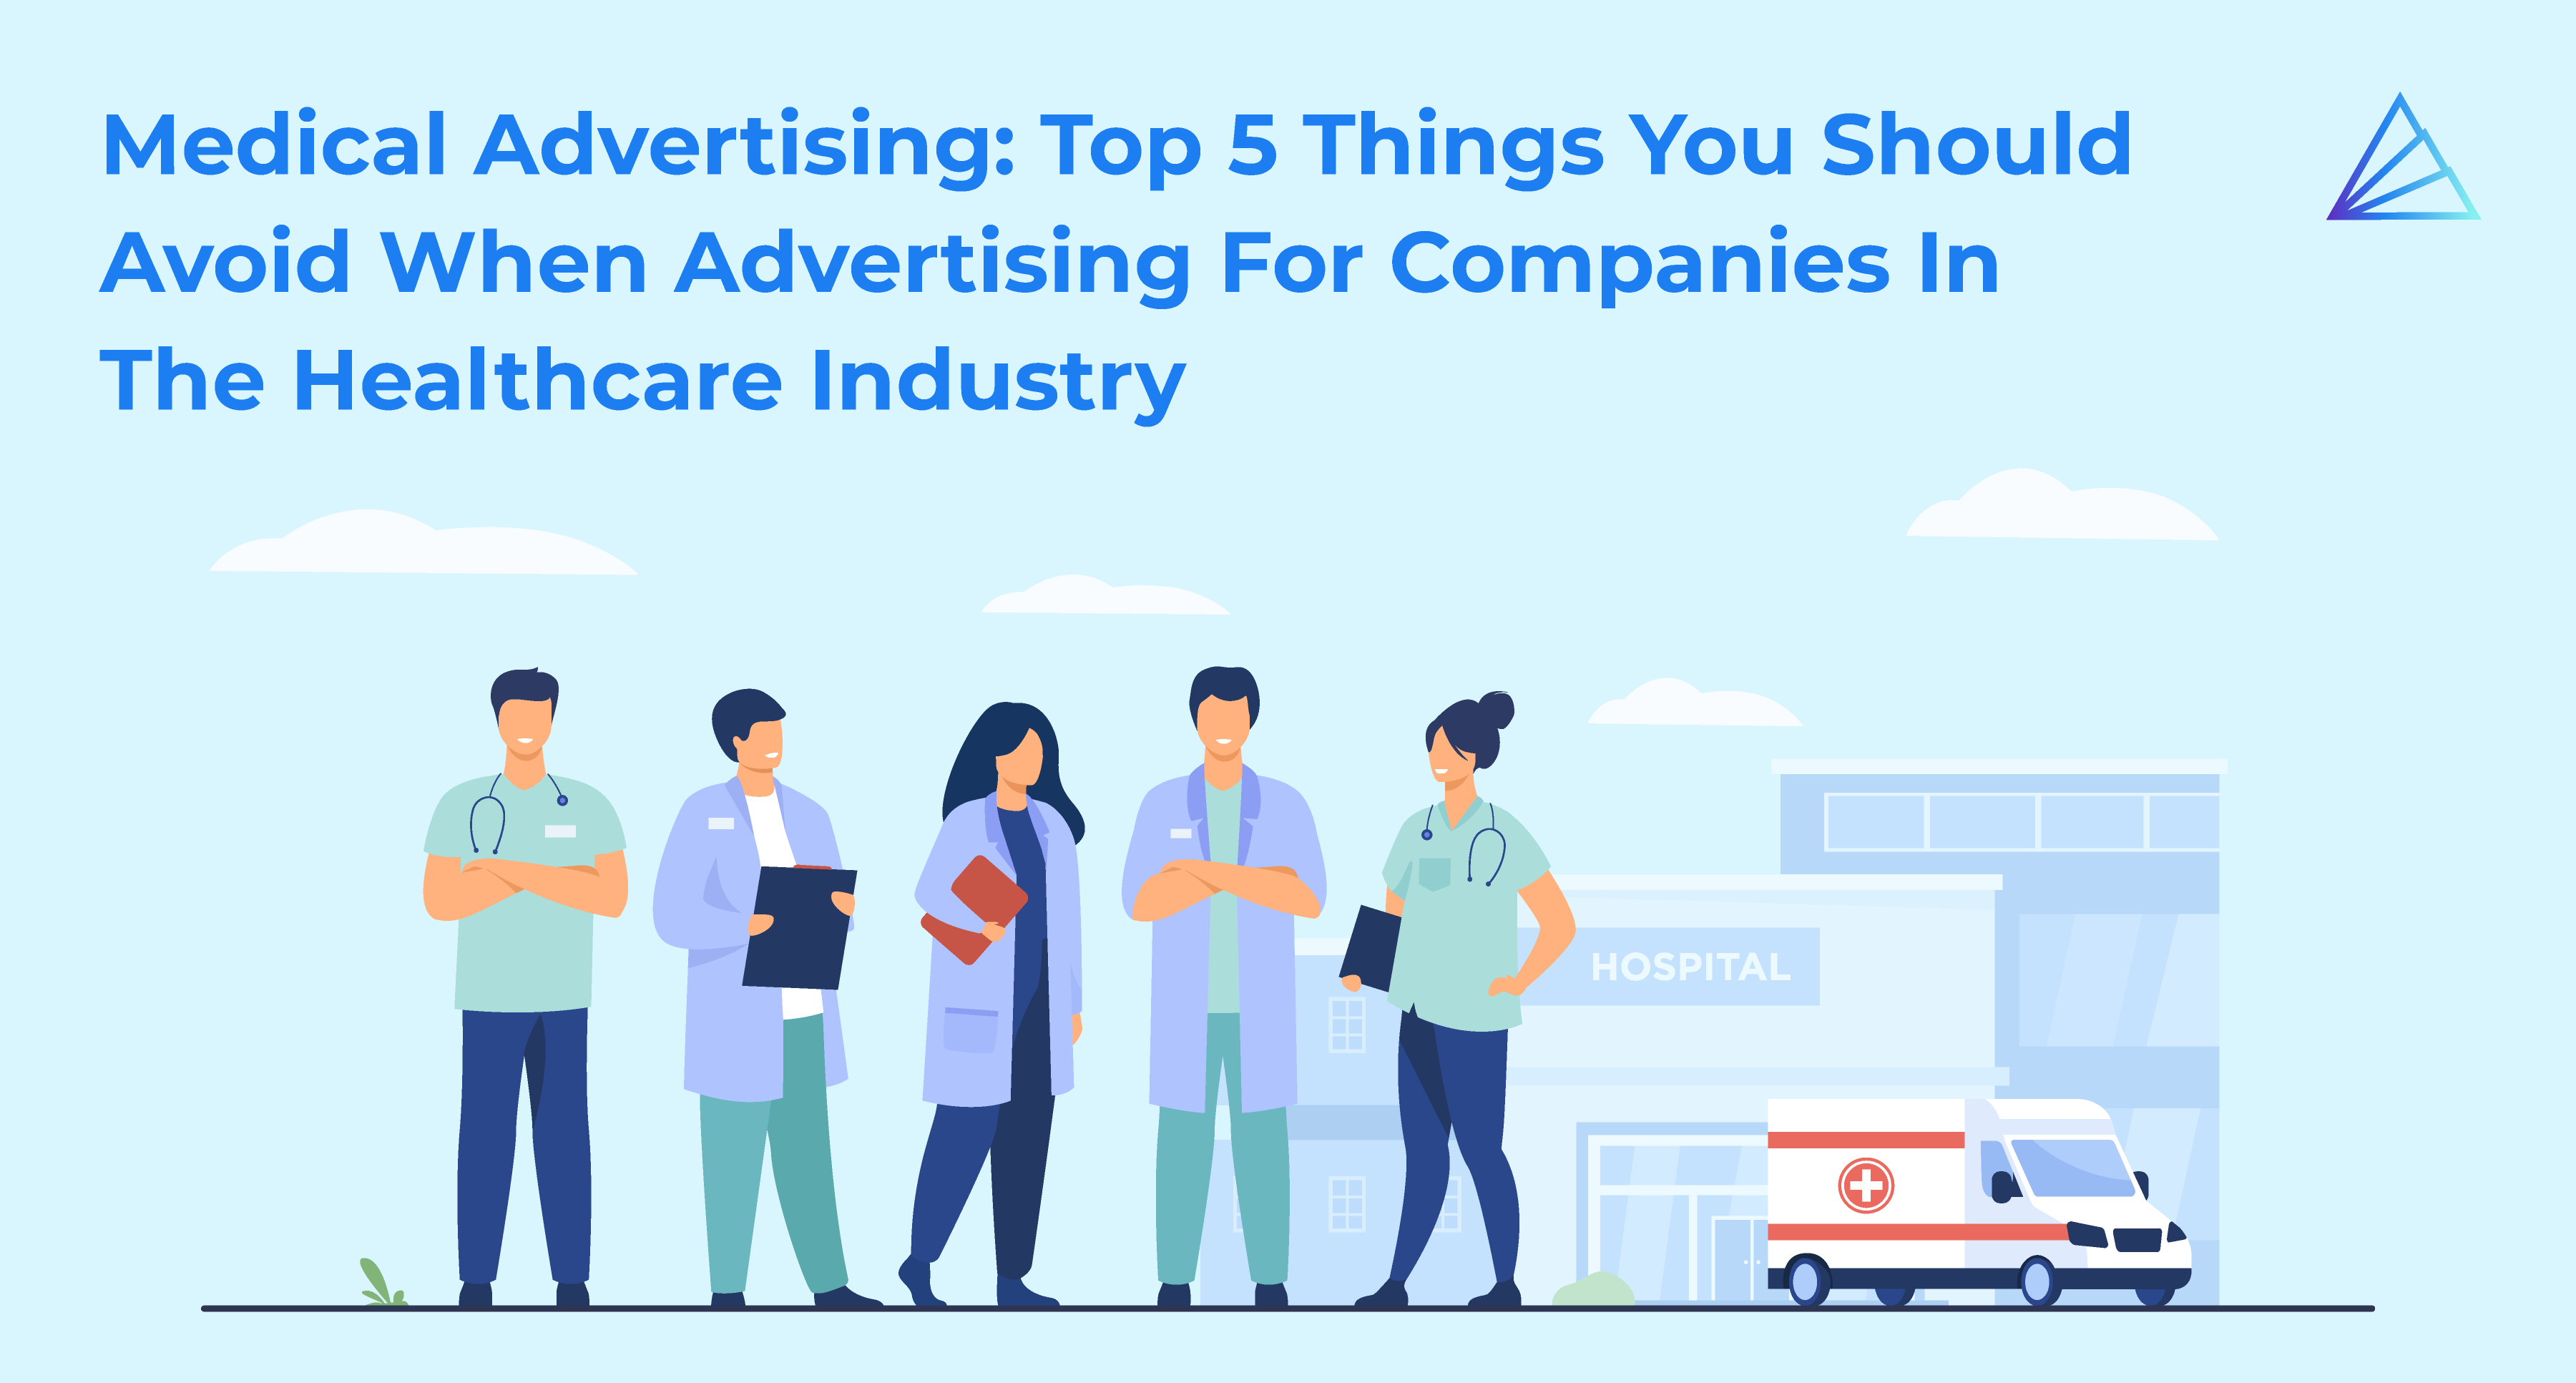 Top 5 Things You Should Avoid When Advertising For Companies In The Healthcare Industry